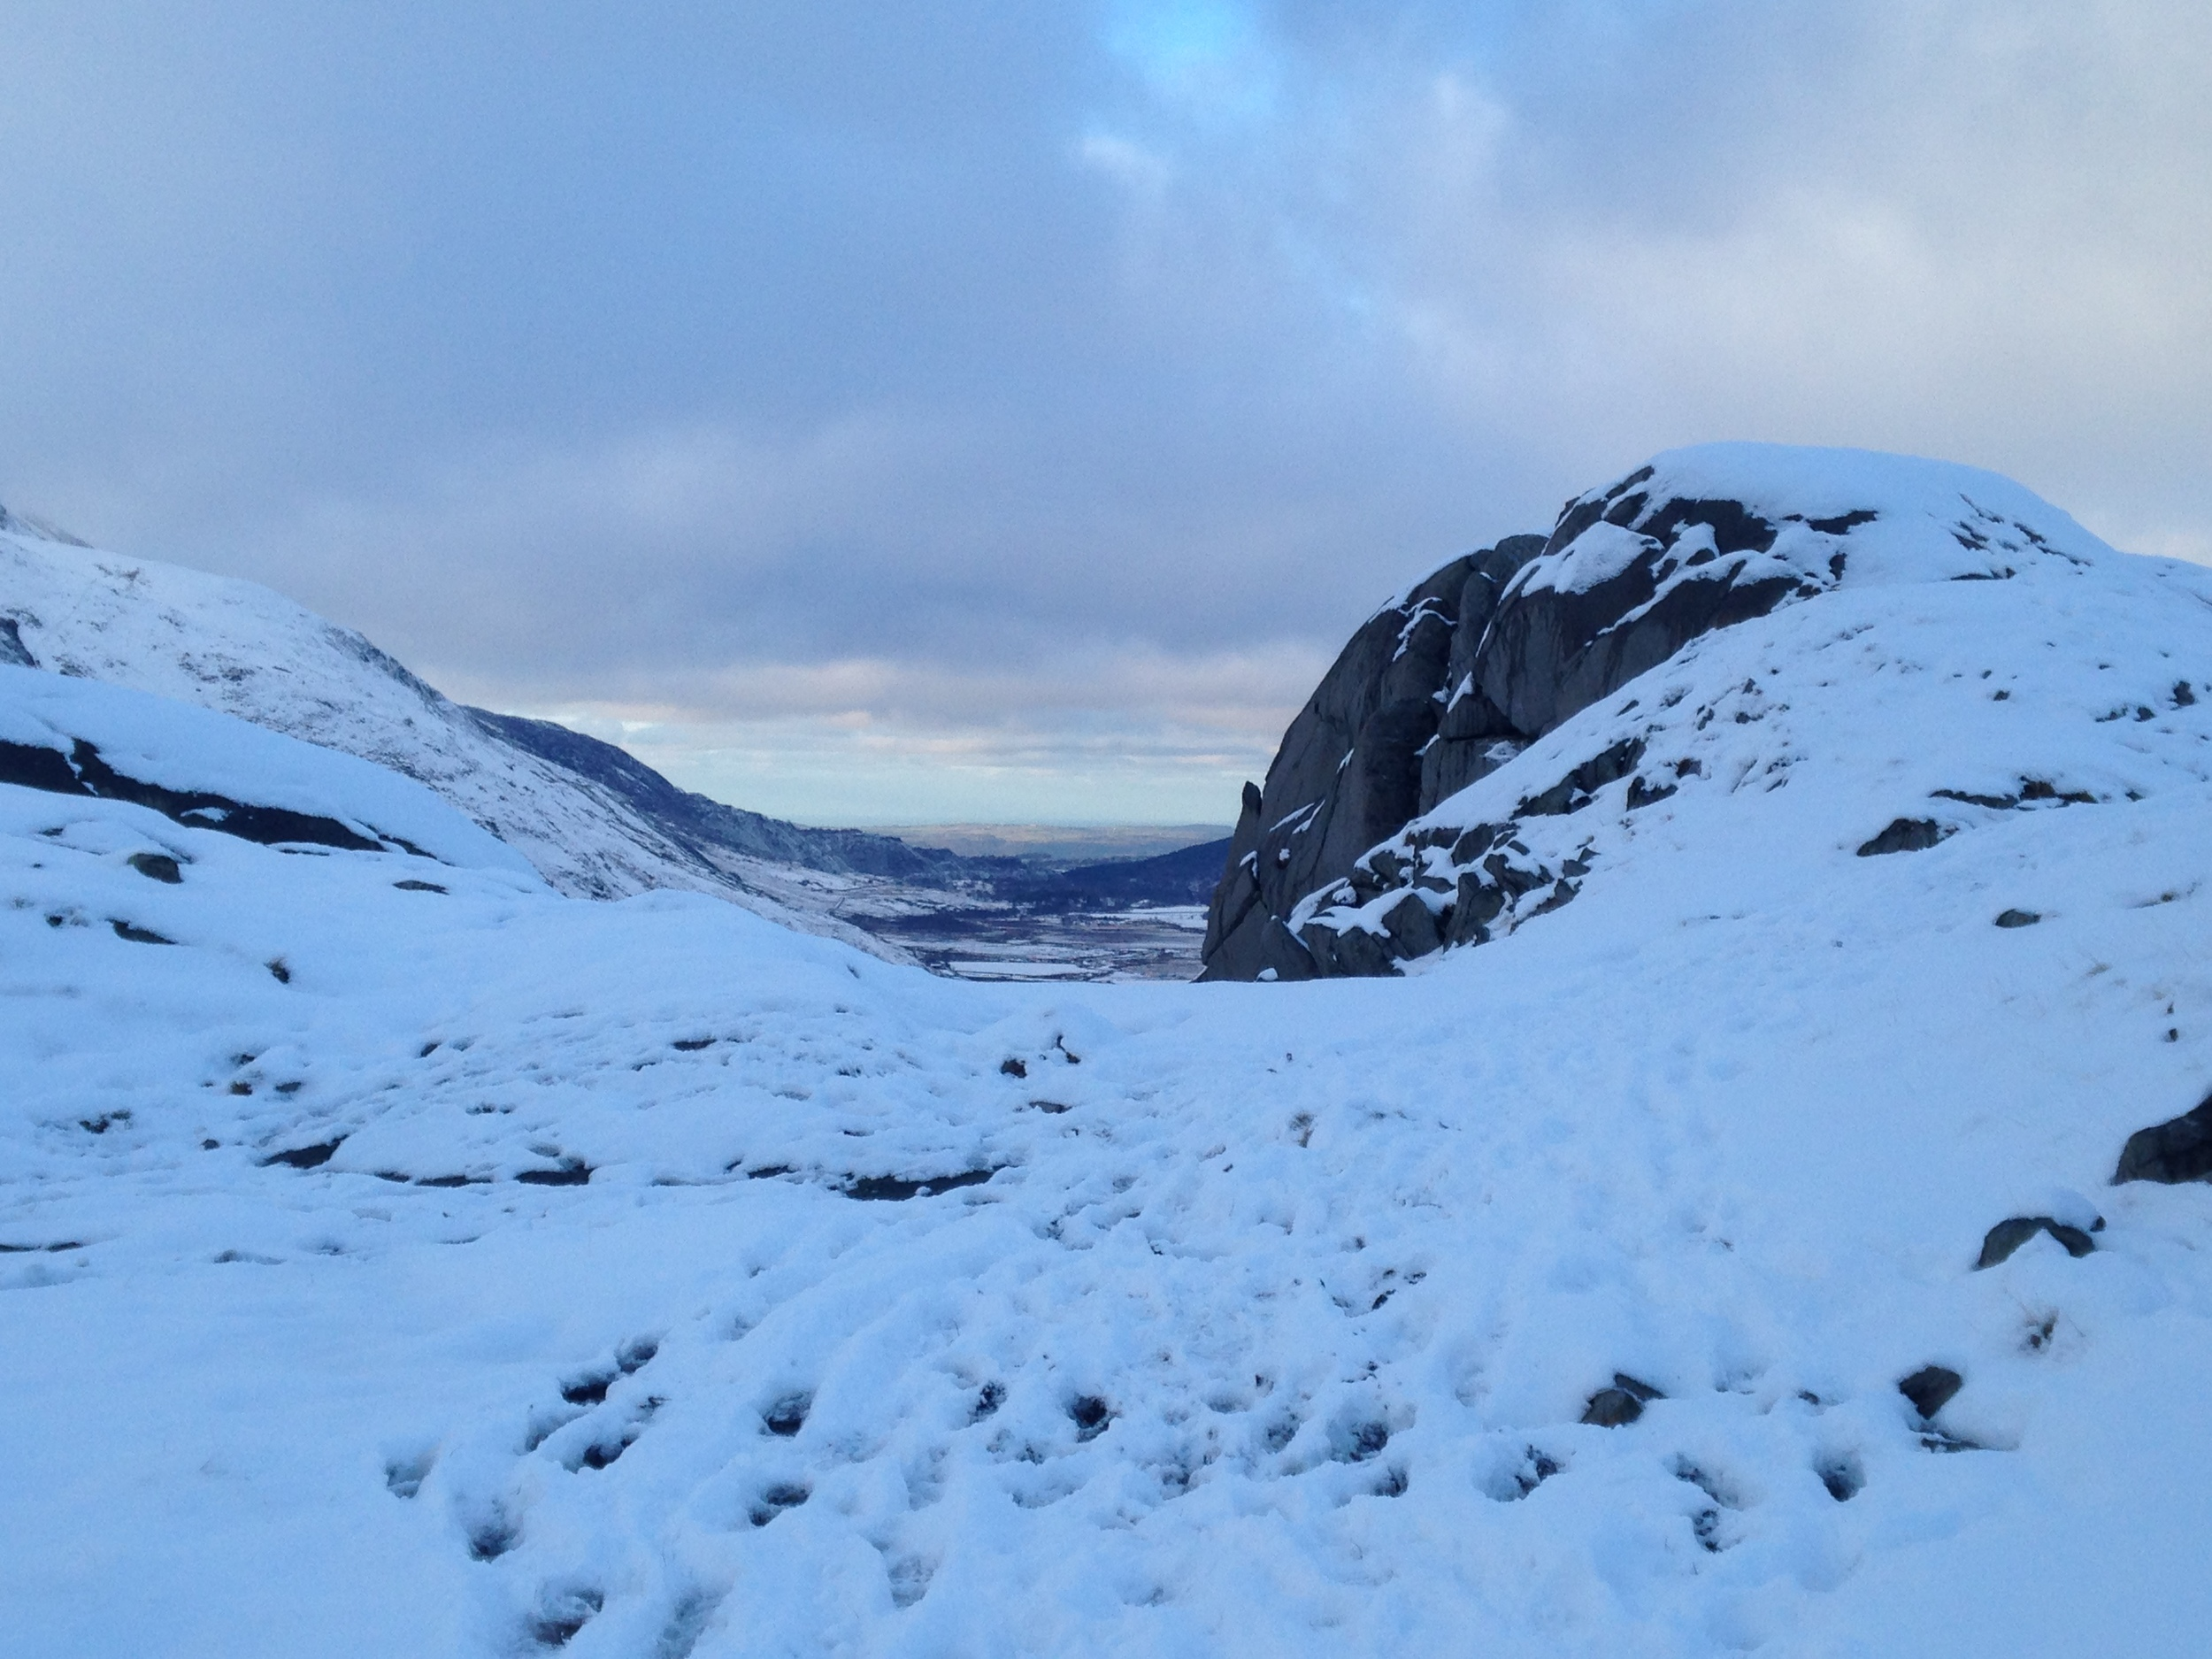 A final look east, over Nant Ffrancon and to Ynys Mon in the distance.